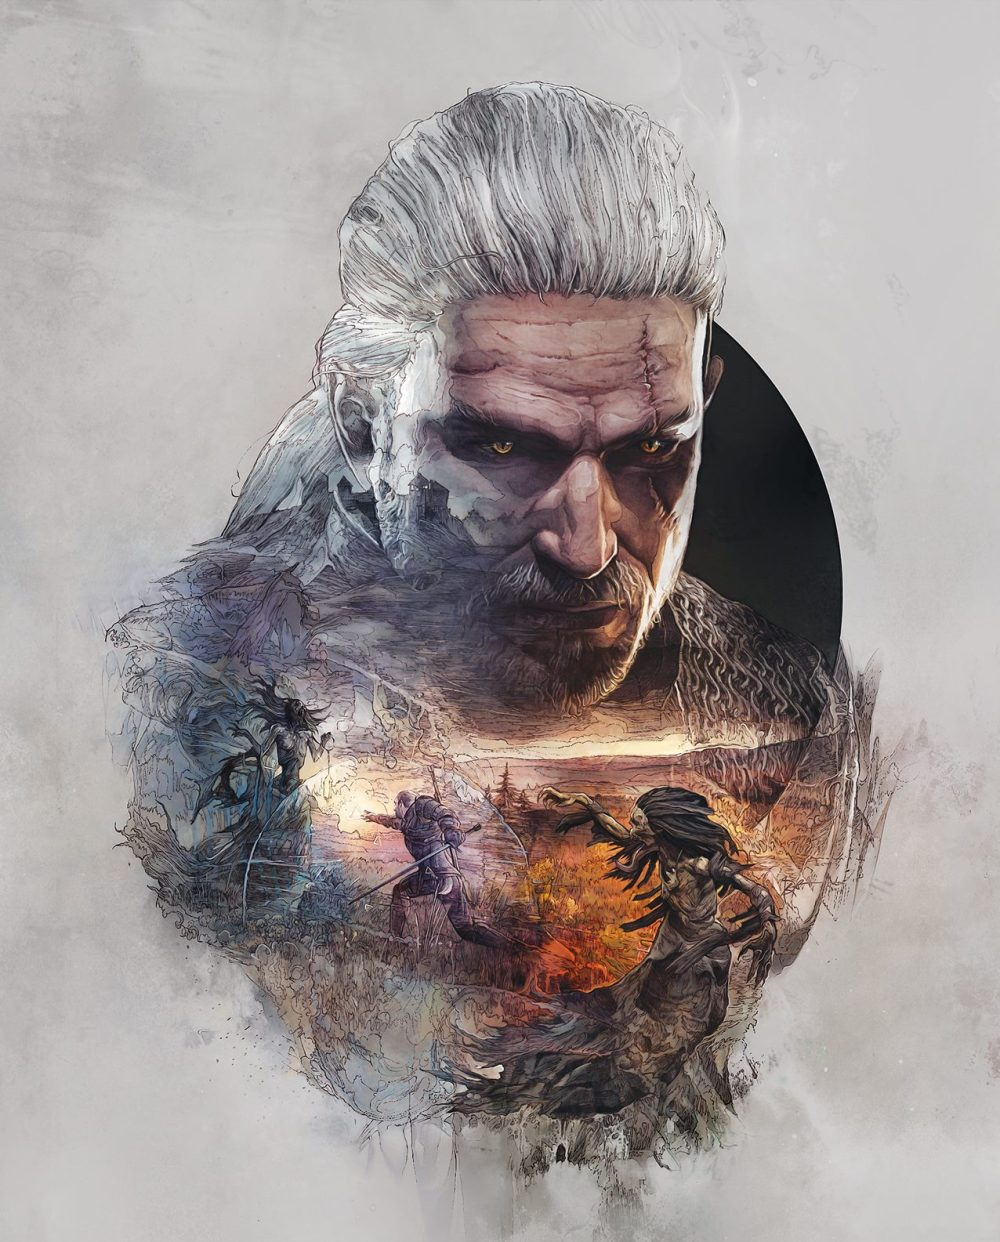 1419874968-witcher-3-steelbook-no-man-s-land-version-front_jpg_1400x0_q85